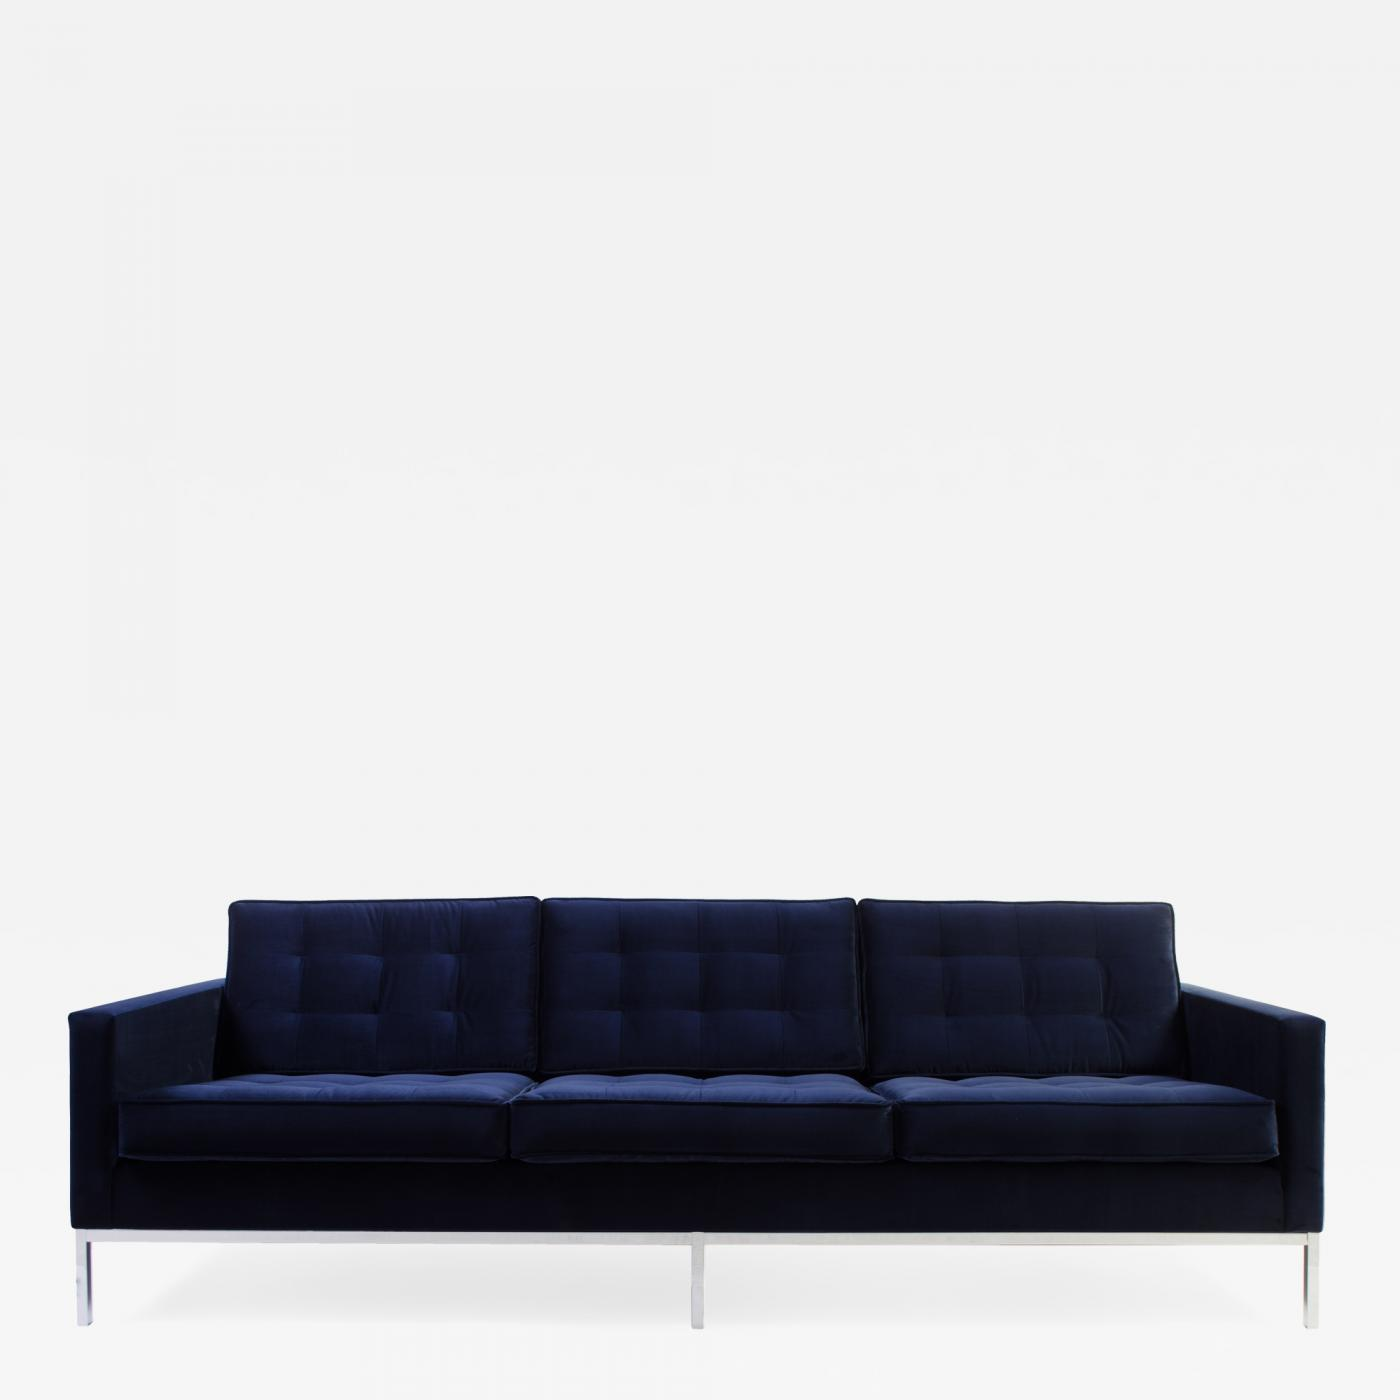 Listings / Furniture / Seating / Sofas